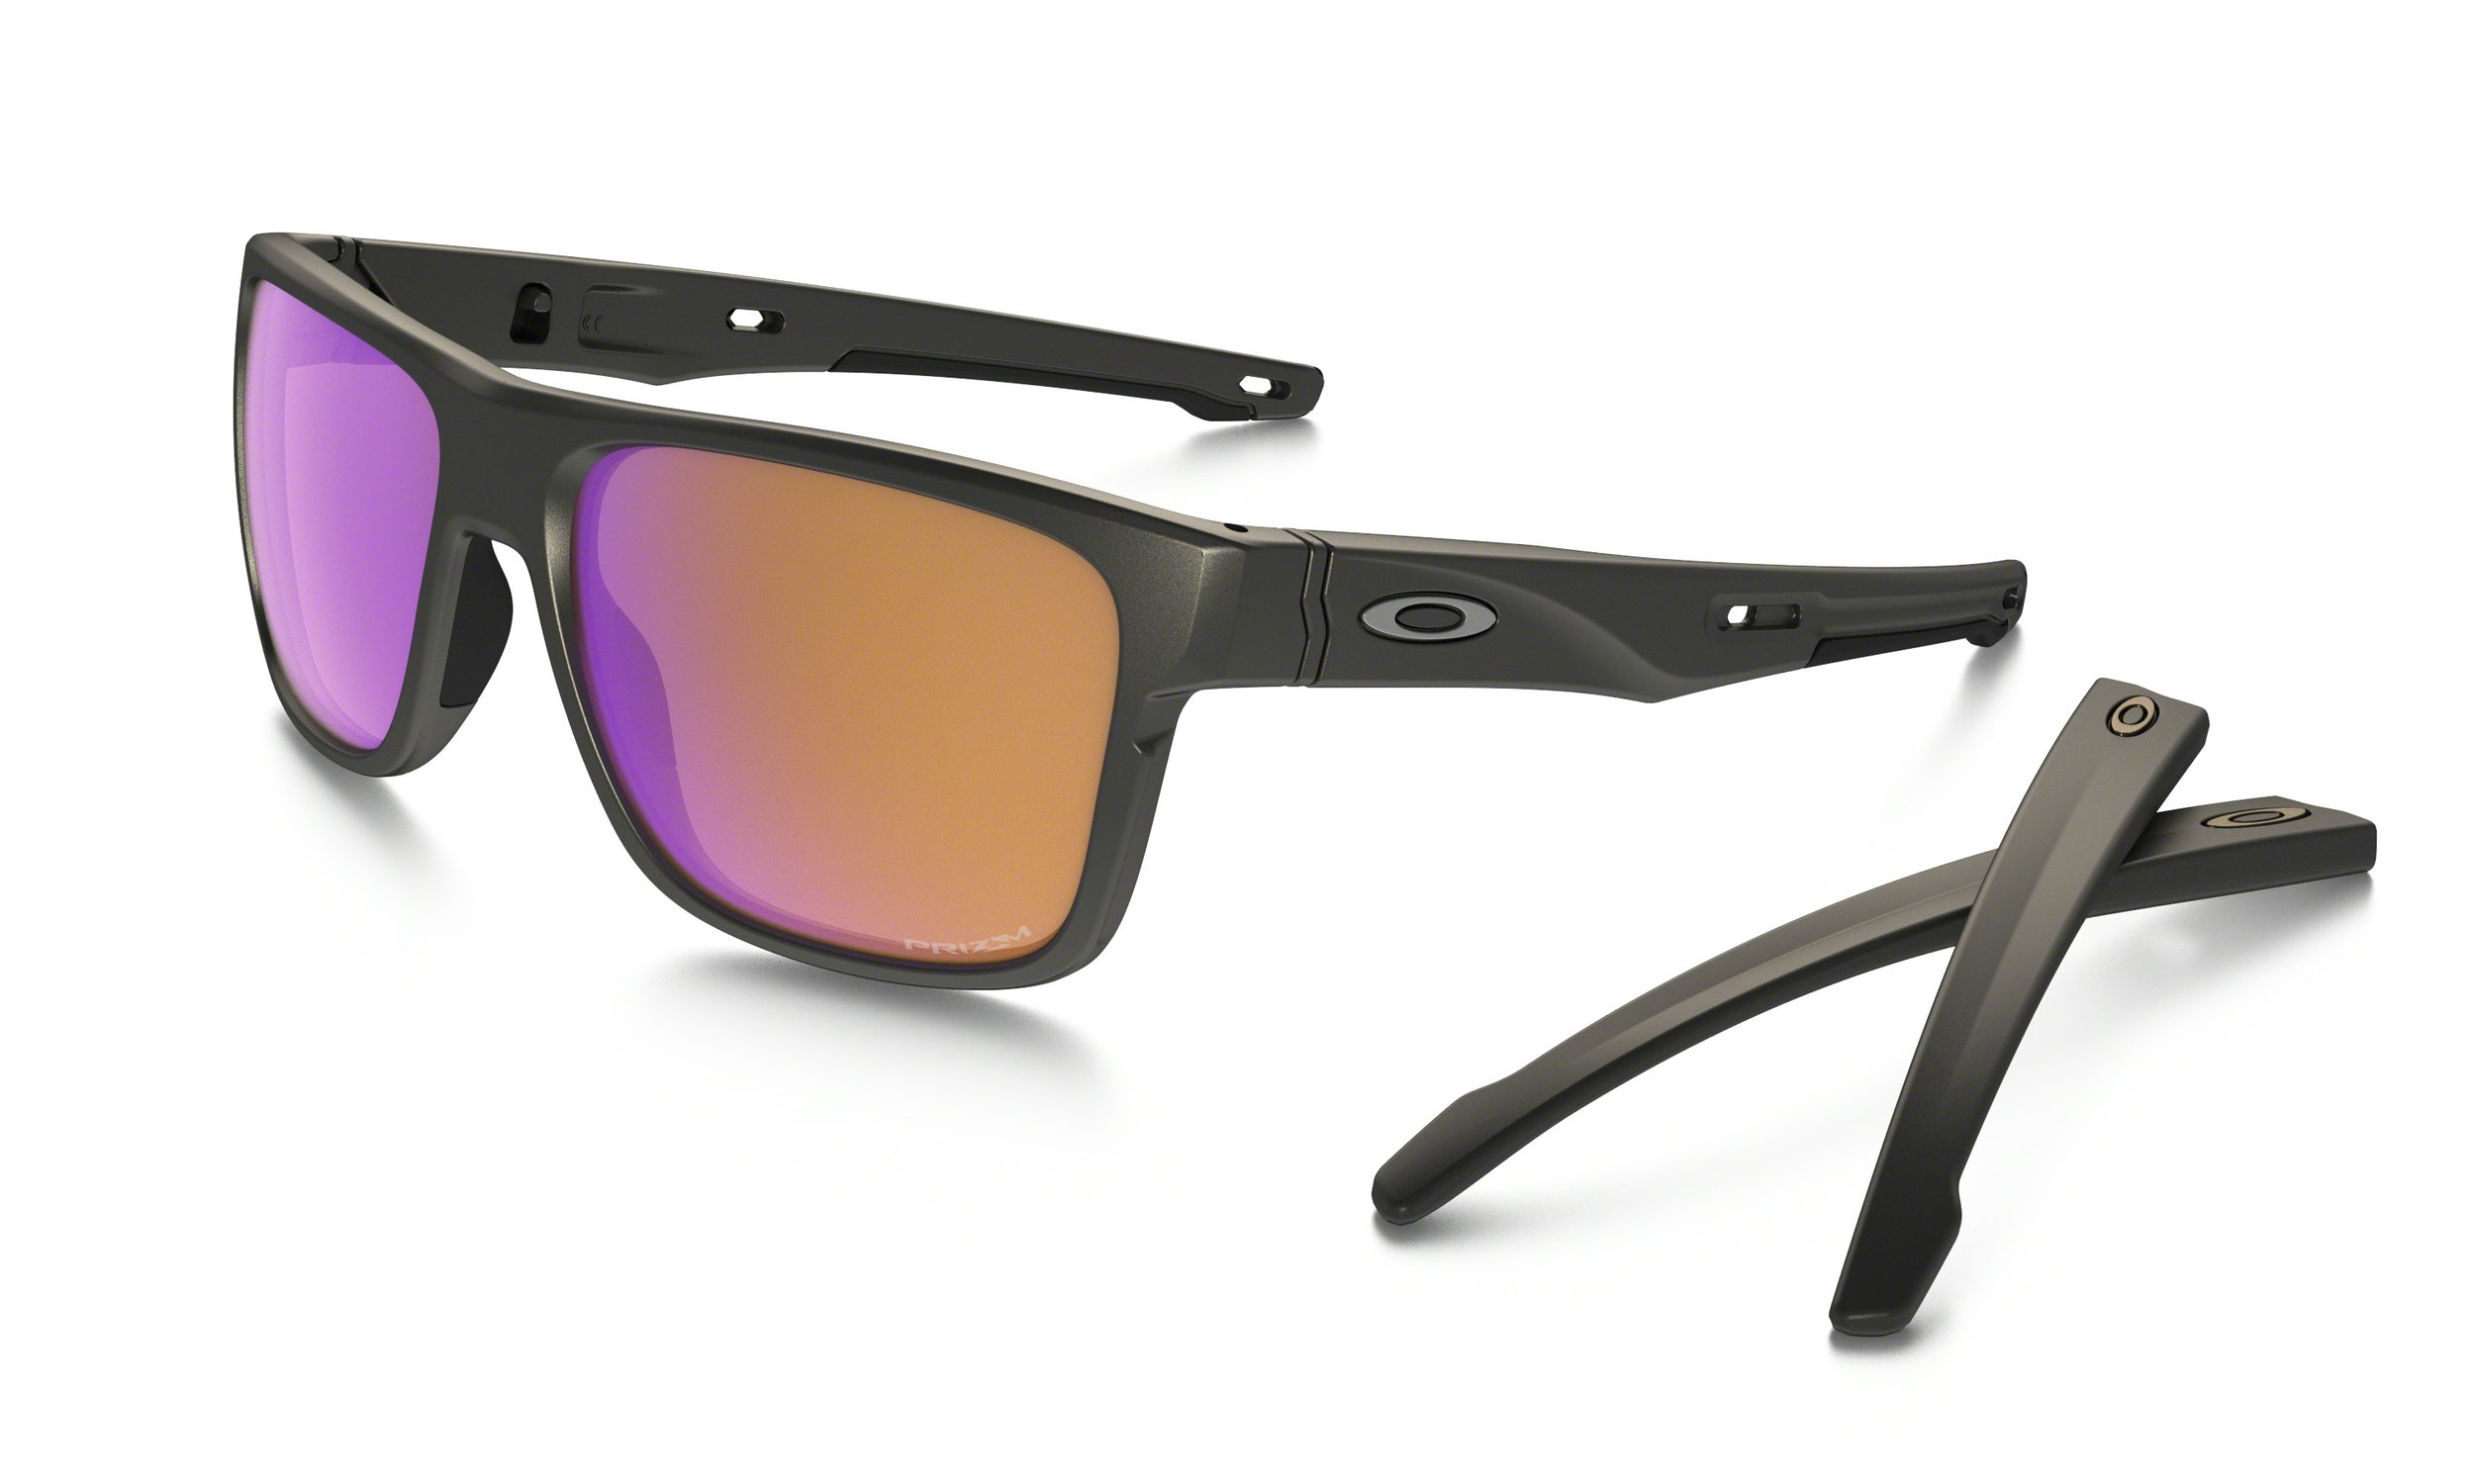 CROSSRANGE™ PRIZM™ TRAIL - Made with interchangeable temples and nose pads that let you adapt style and performance for a life that never slows down.